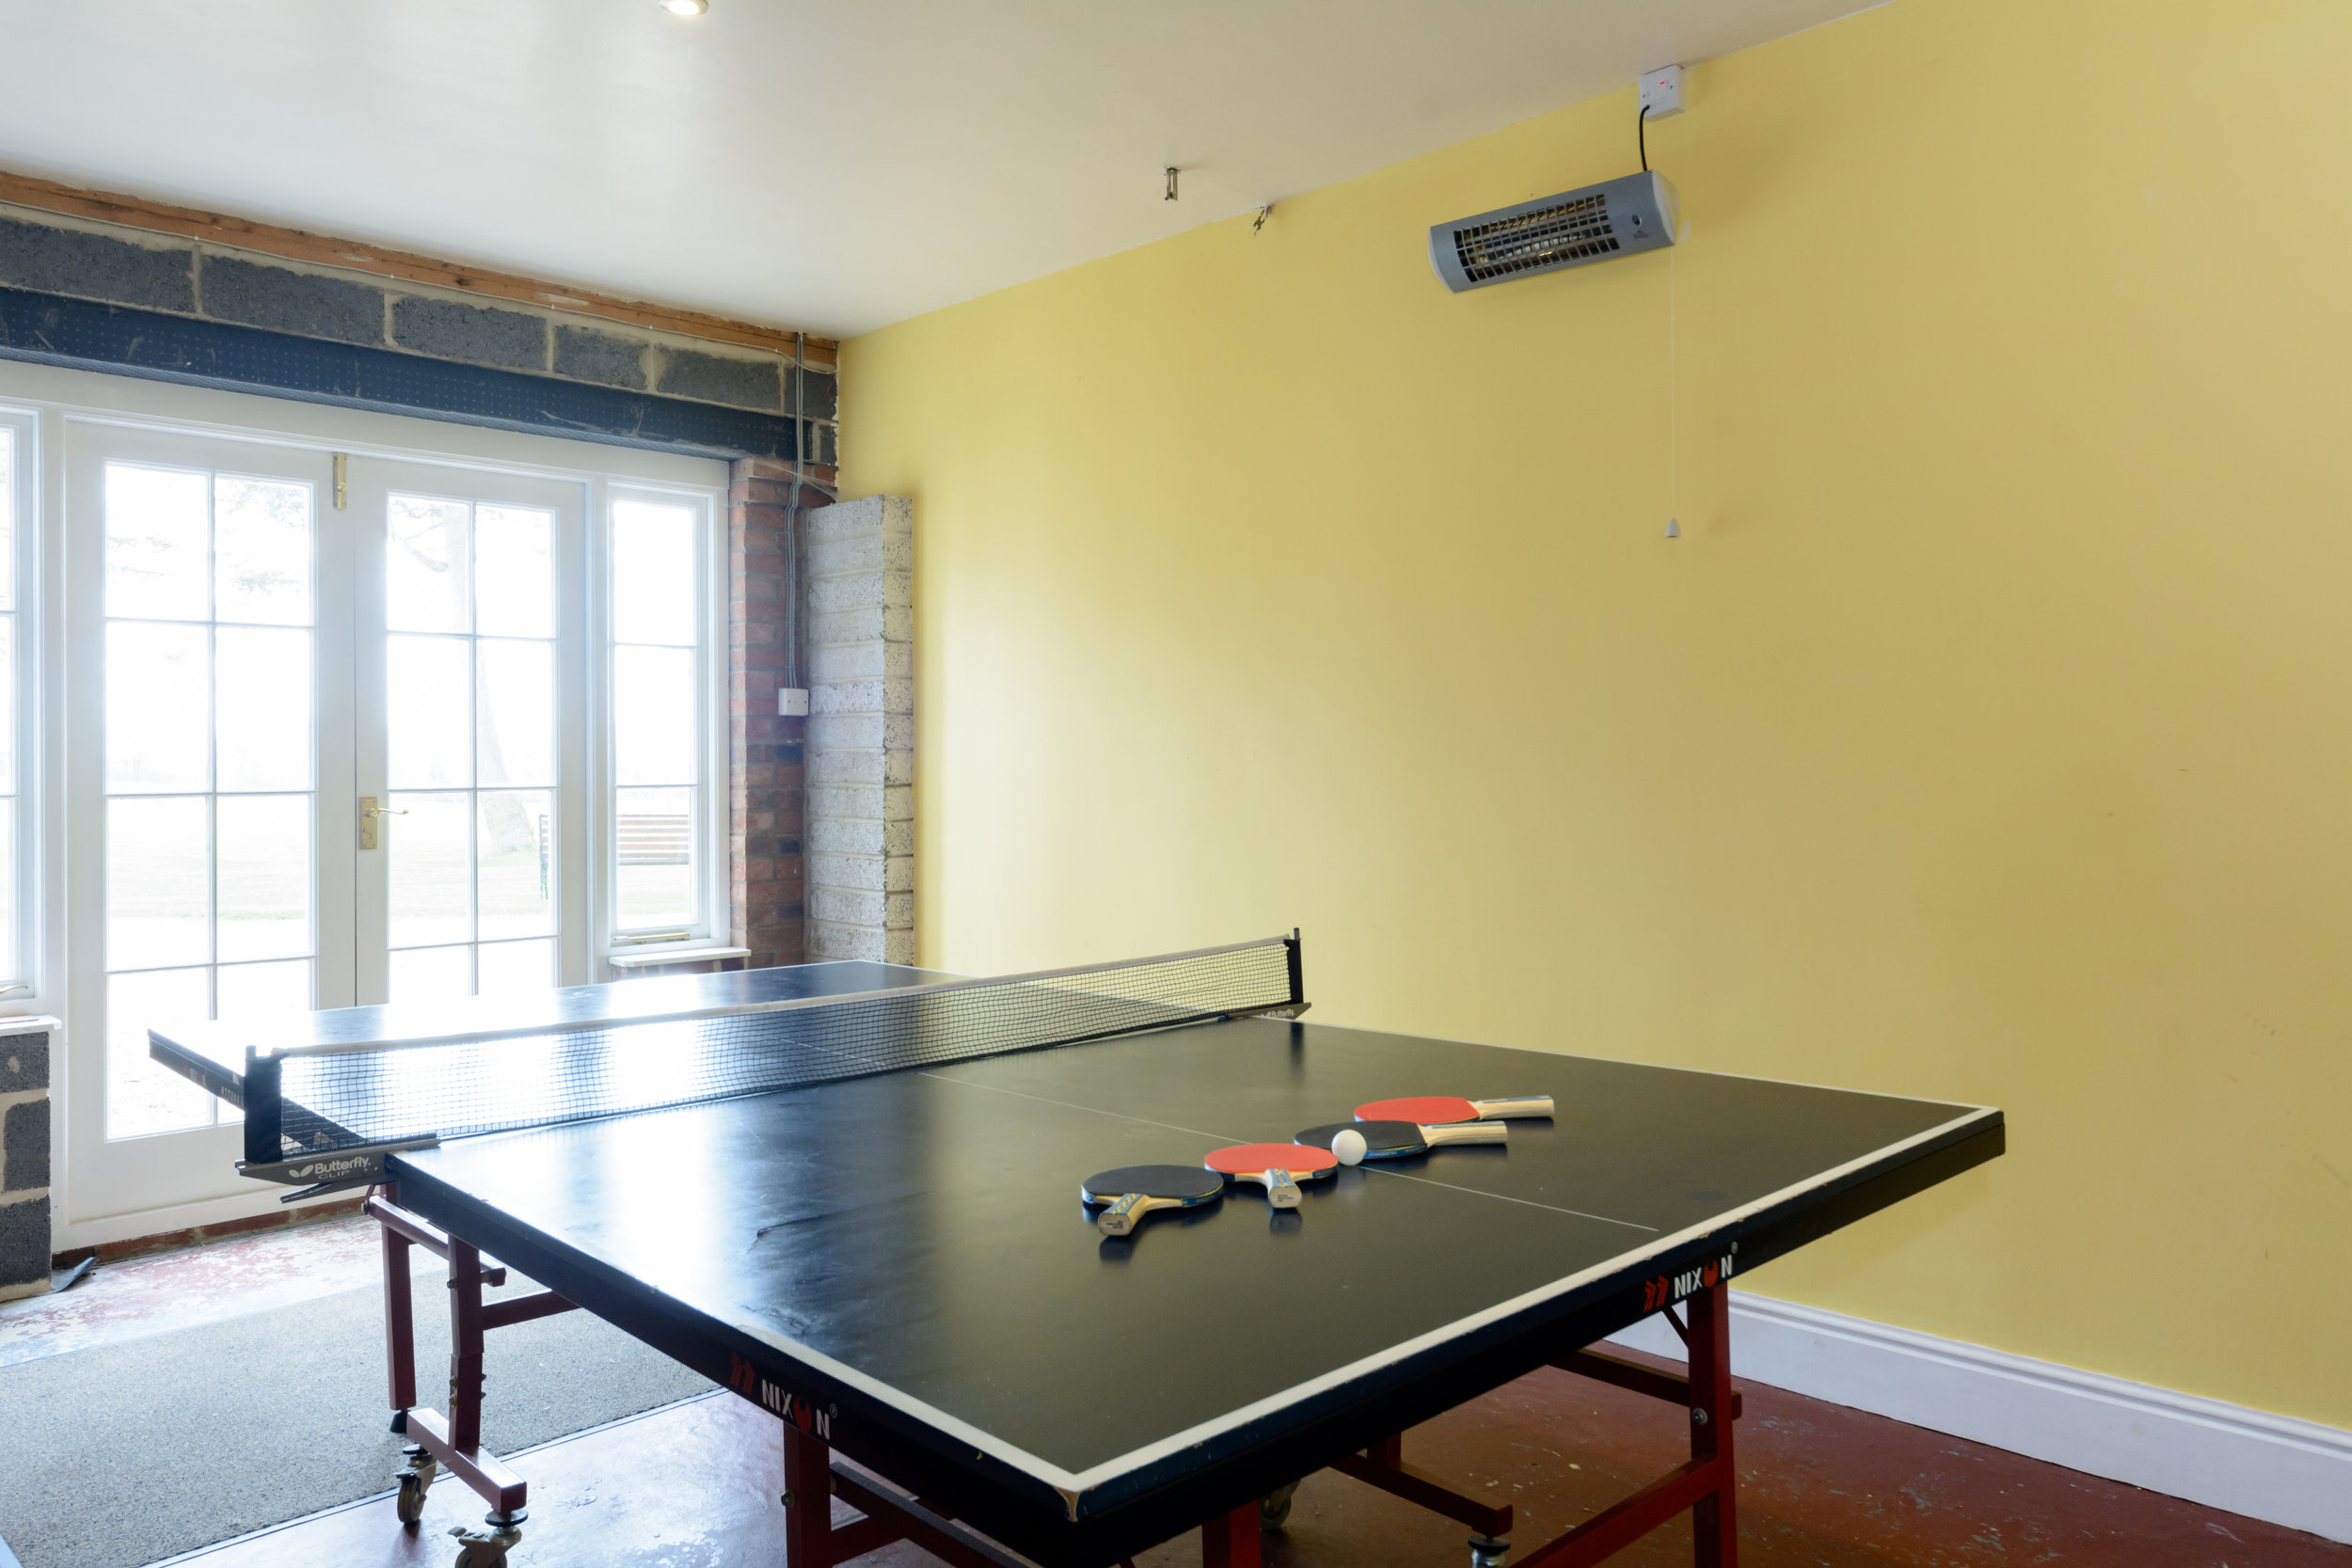 The Table Tennis Room